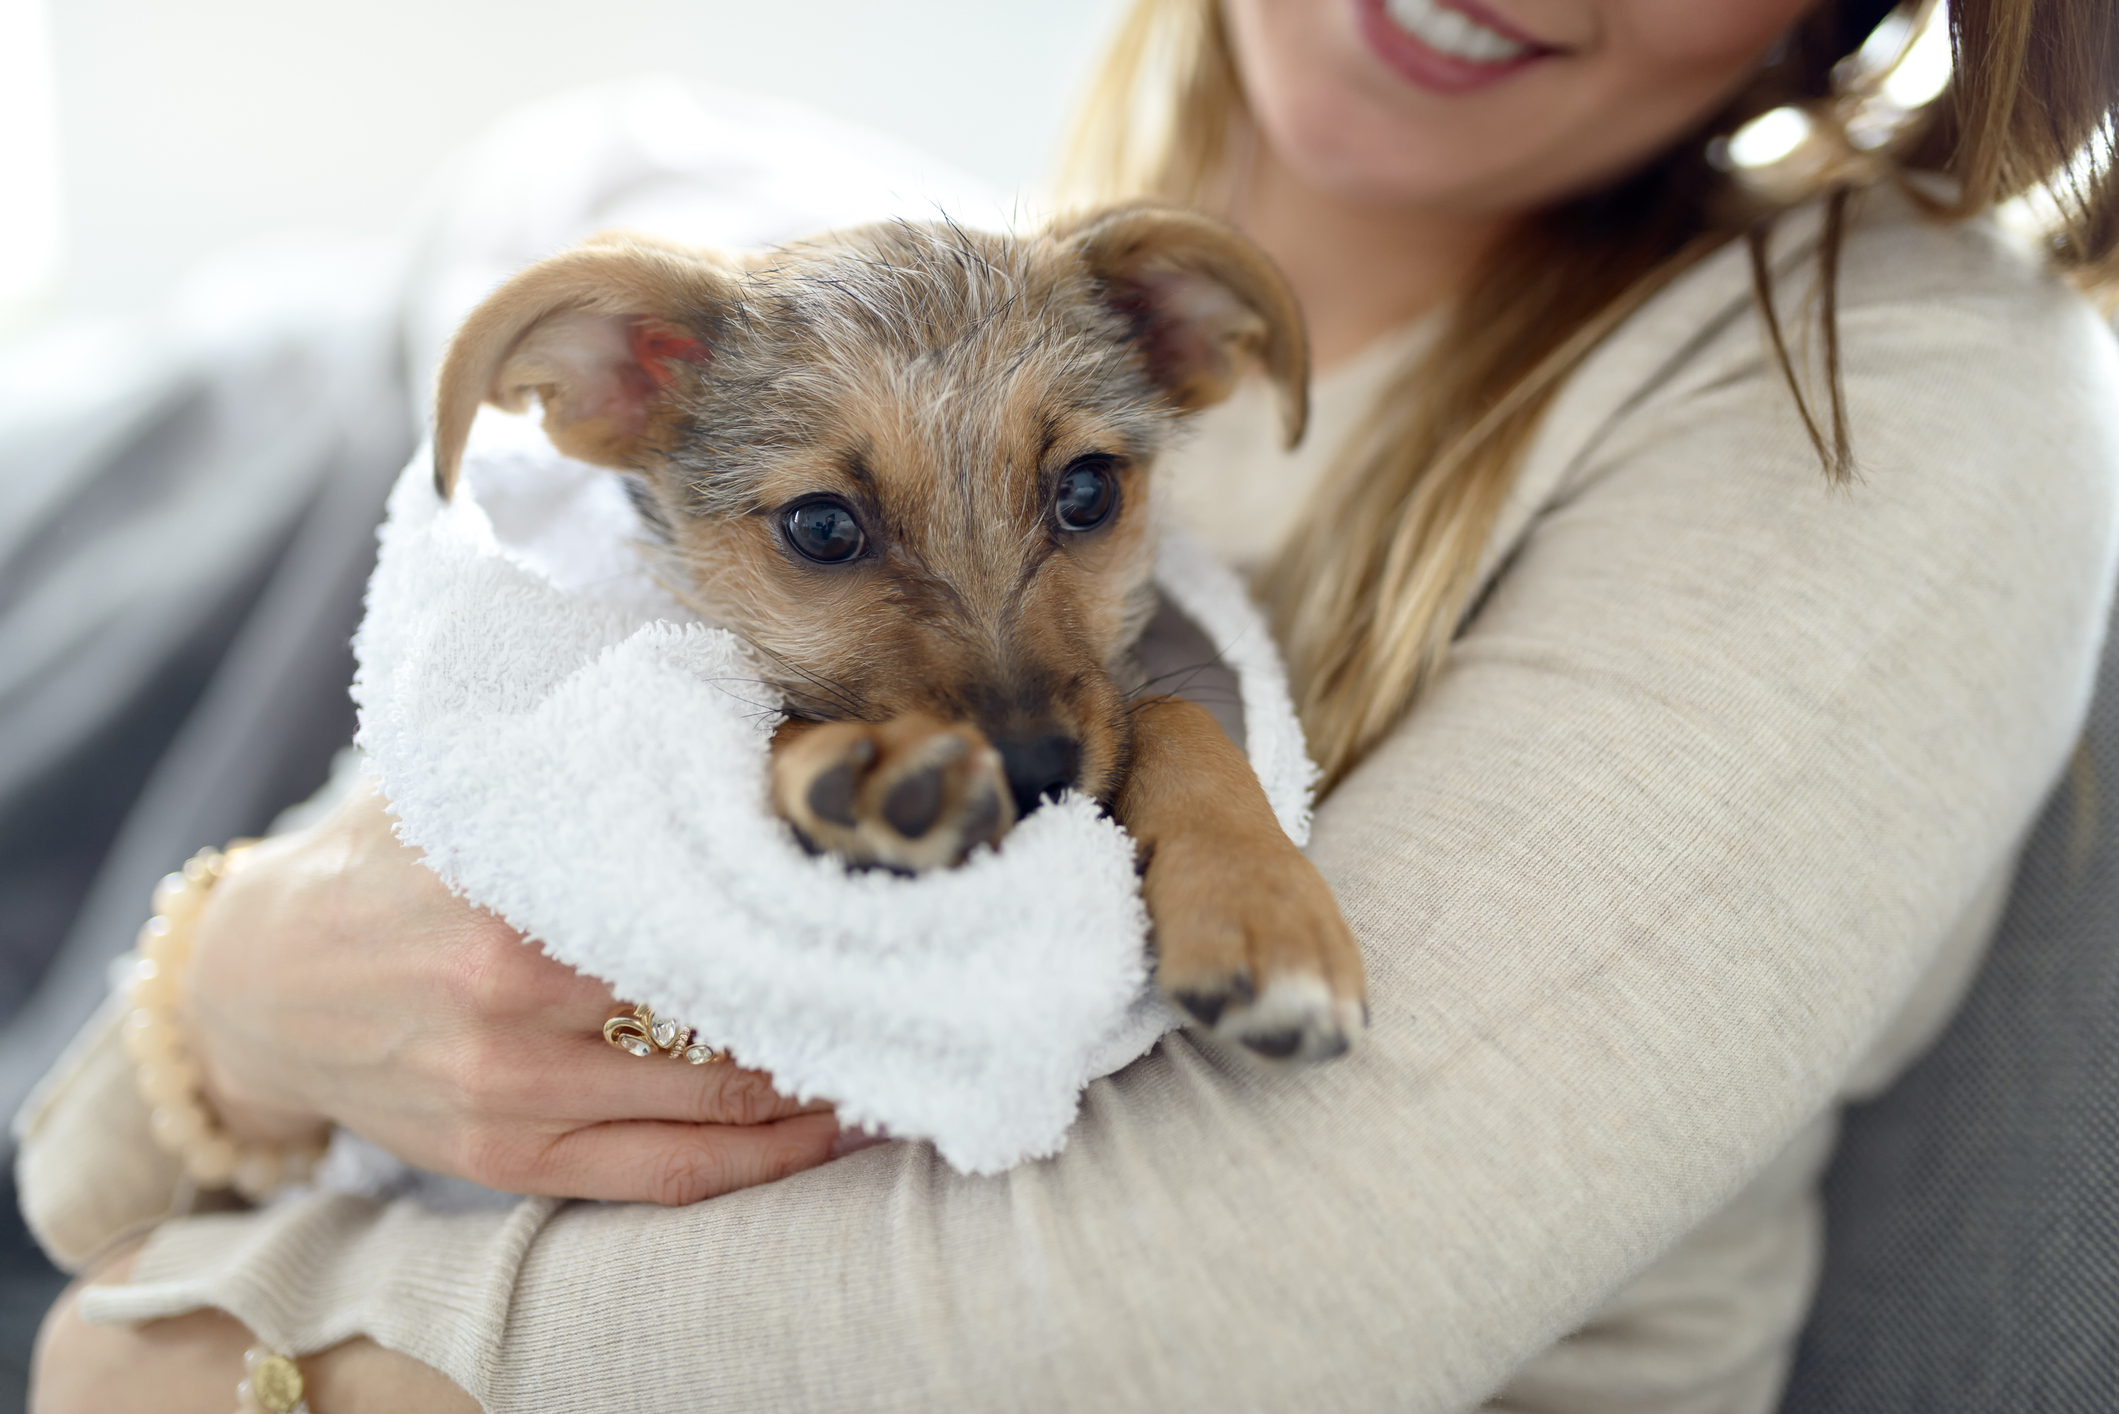 Little puppy wrapped in towel